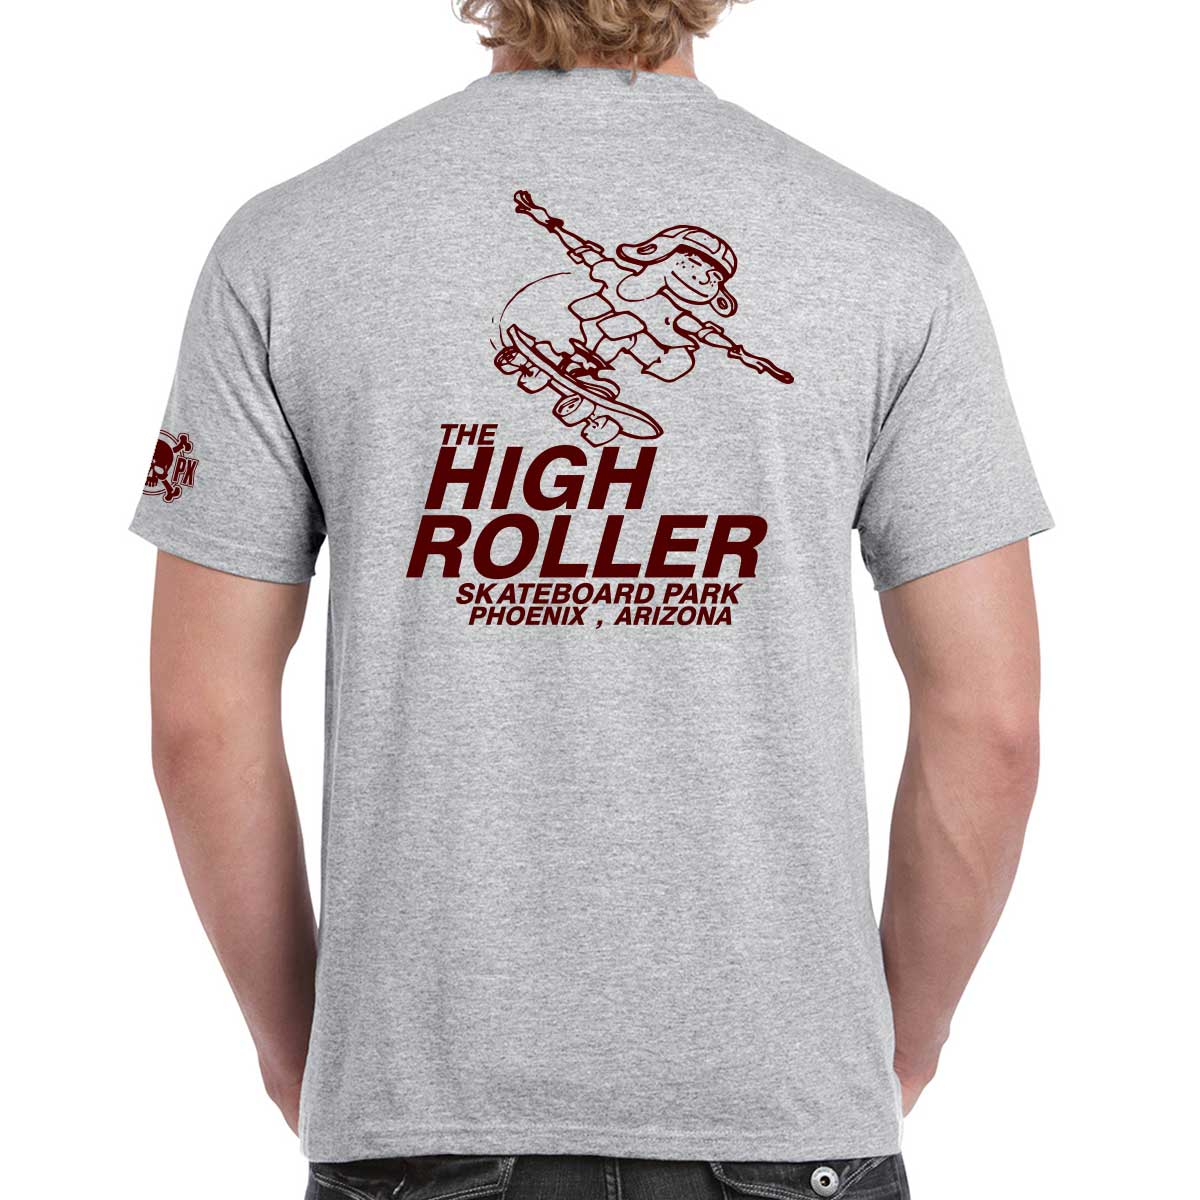 The High Roller Skateboard Park Grey T-shirt